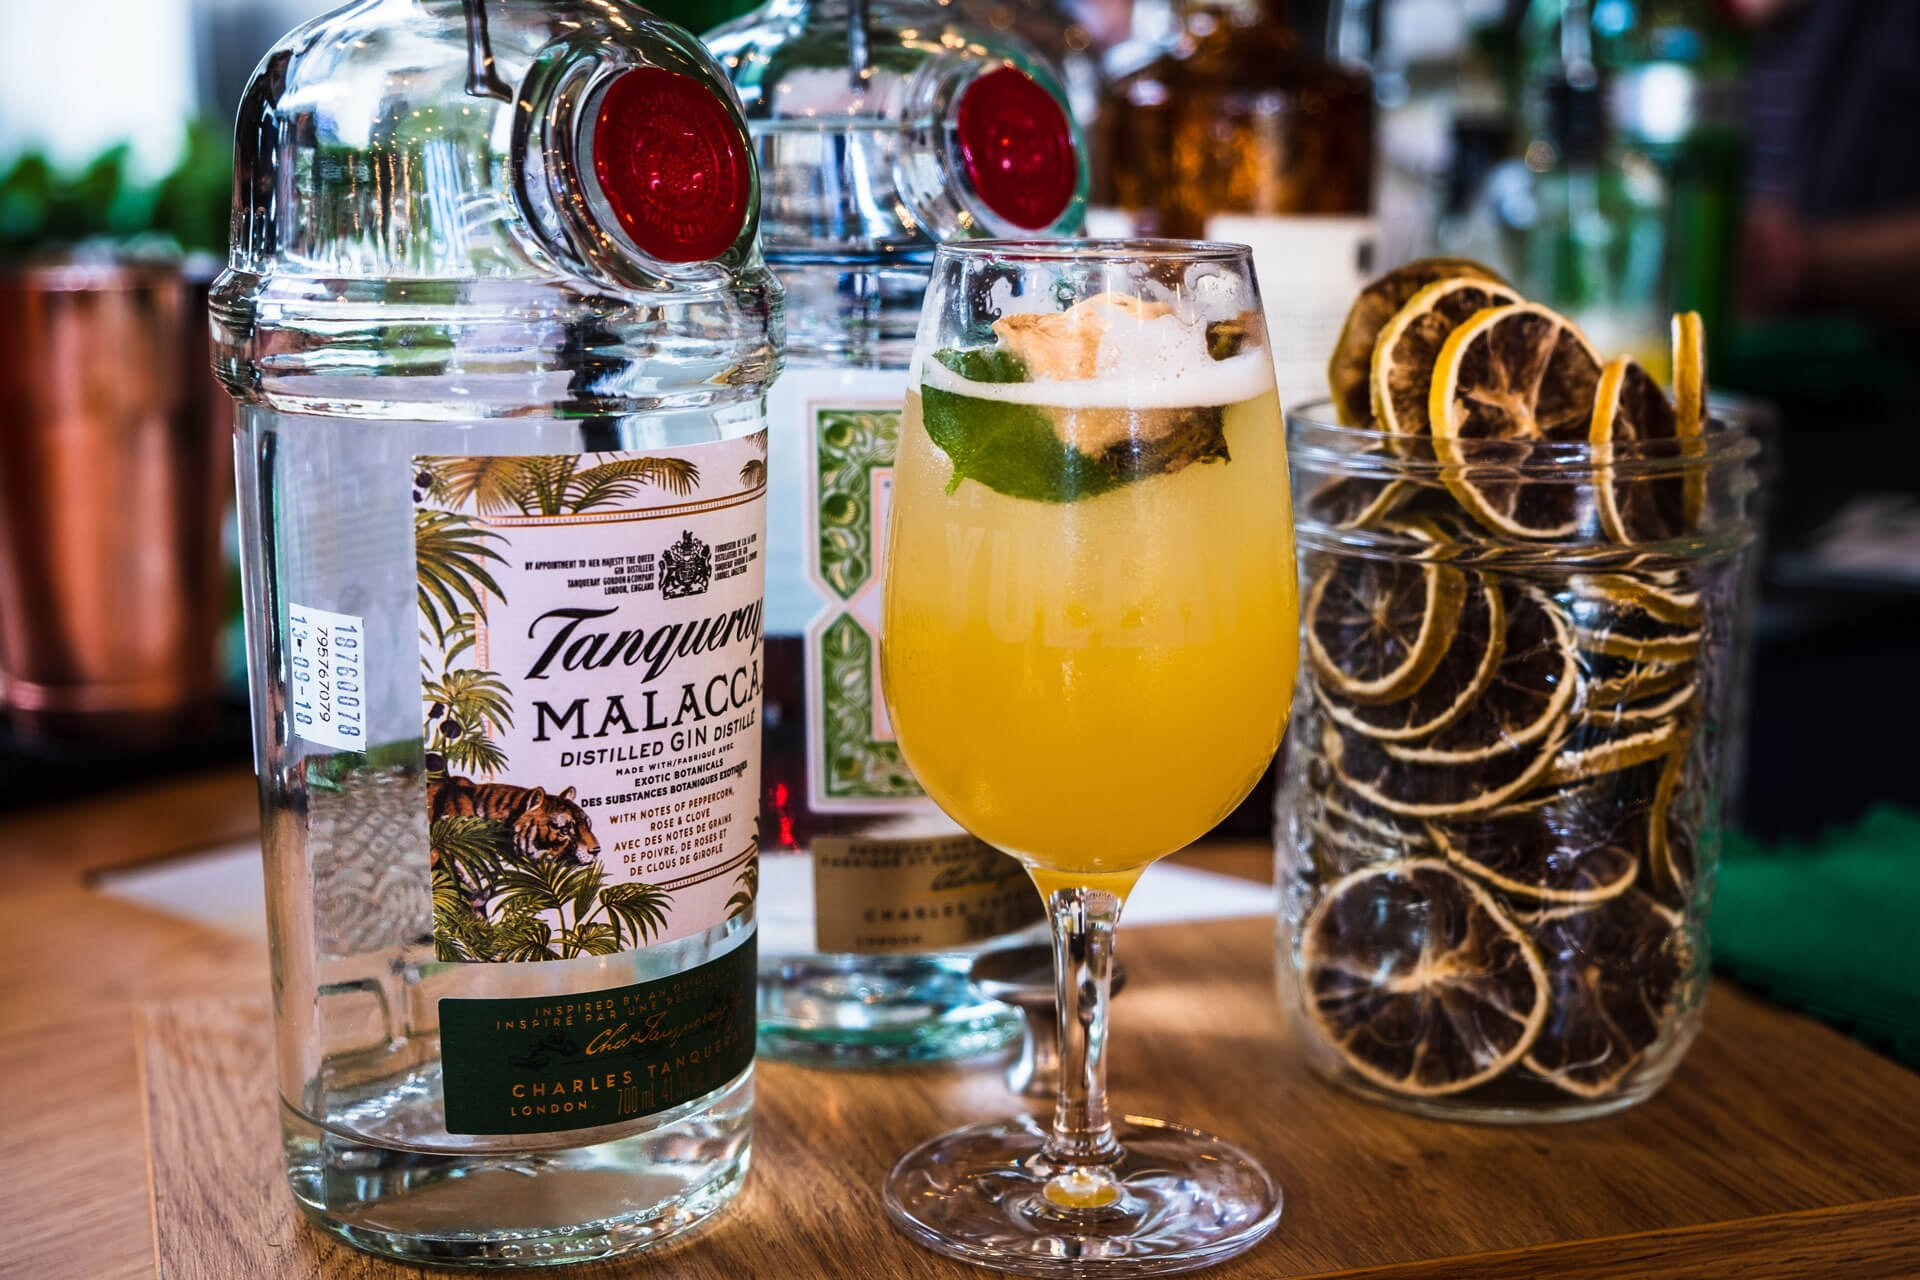 yul-eat-tanqueray-decouvertes-culinaires